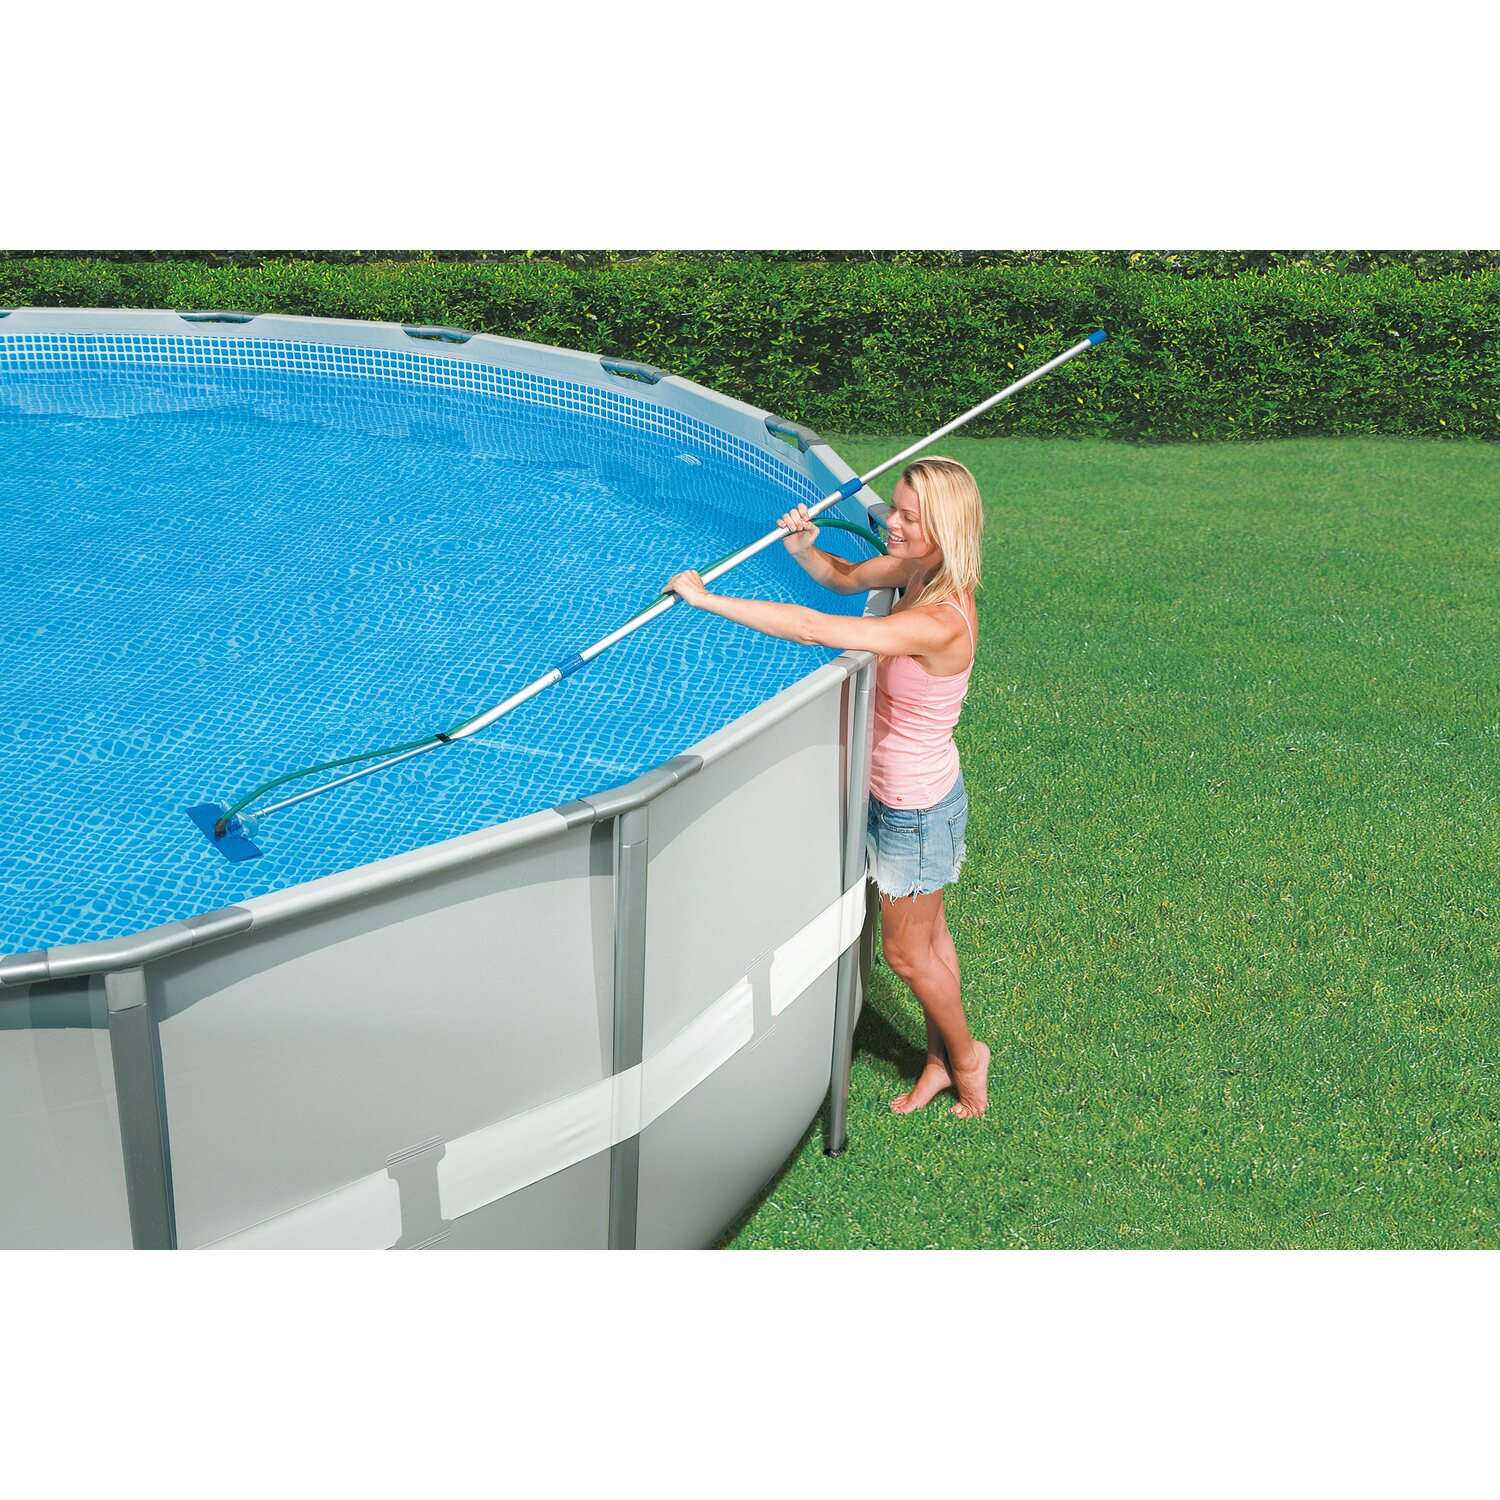 bodensauger pool finest poolblaster pool bodensauger max cg akku betrieben fr with bodensauger. Black Bedroom Furniture Sets. Home Design Ideas